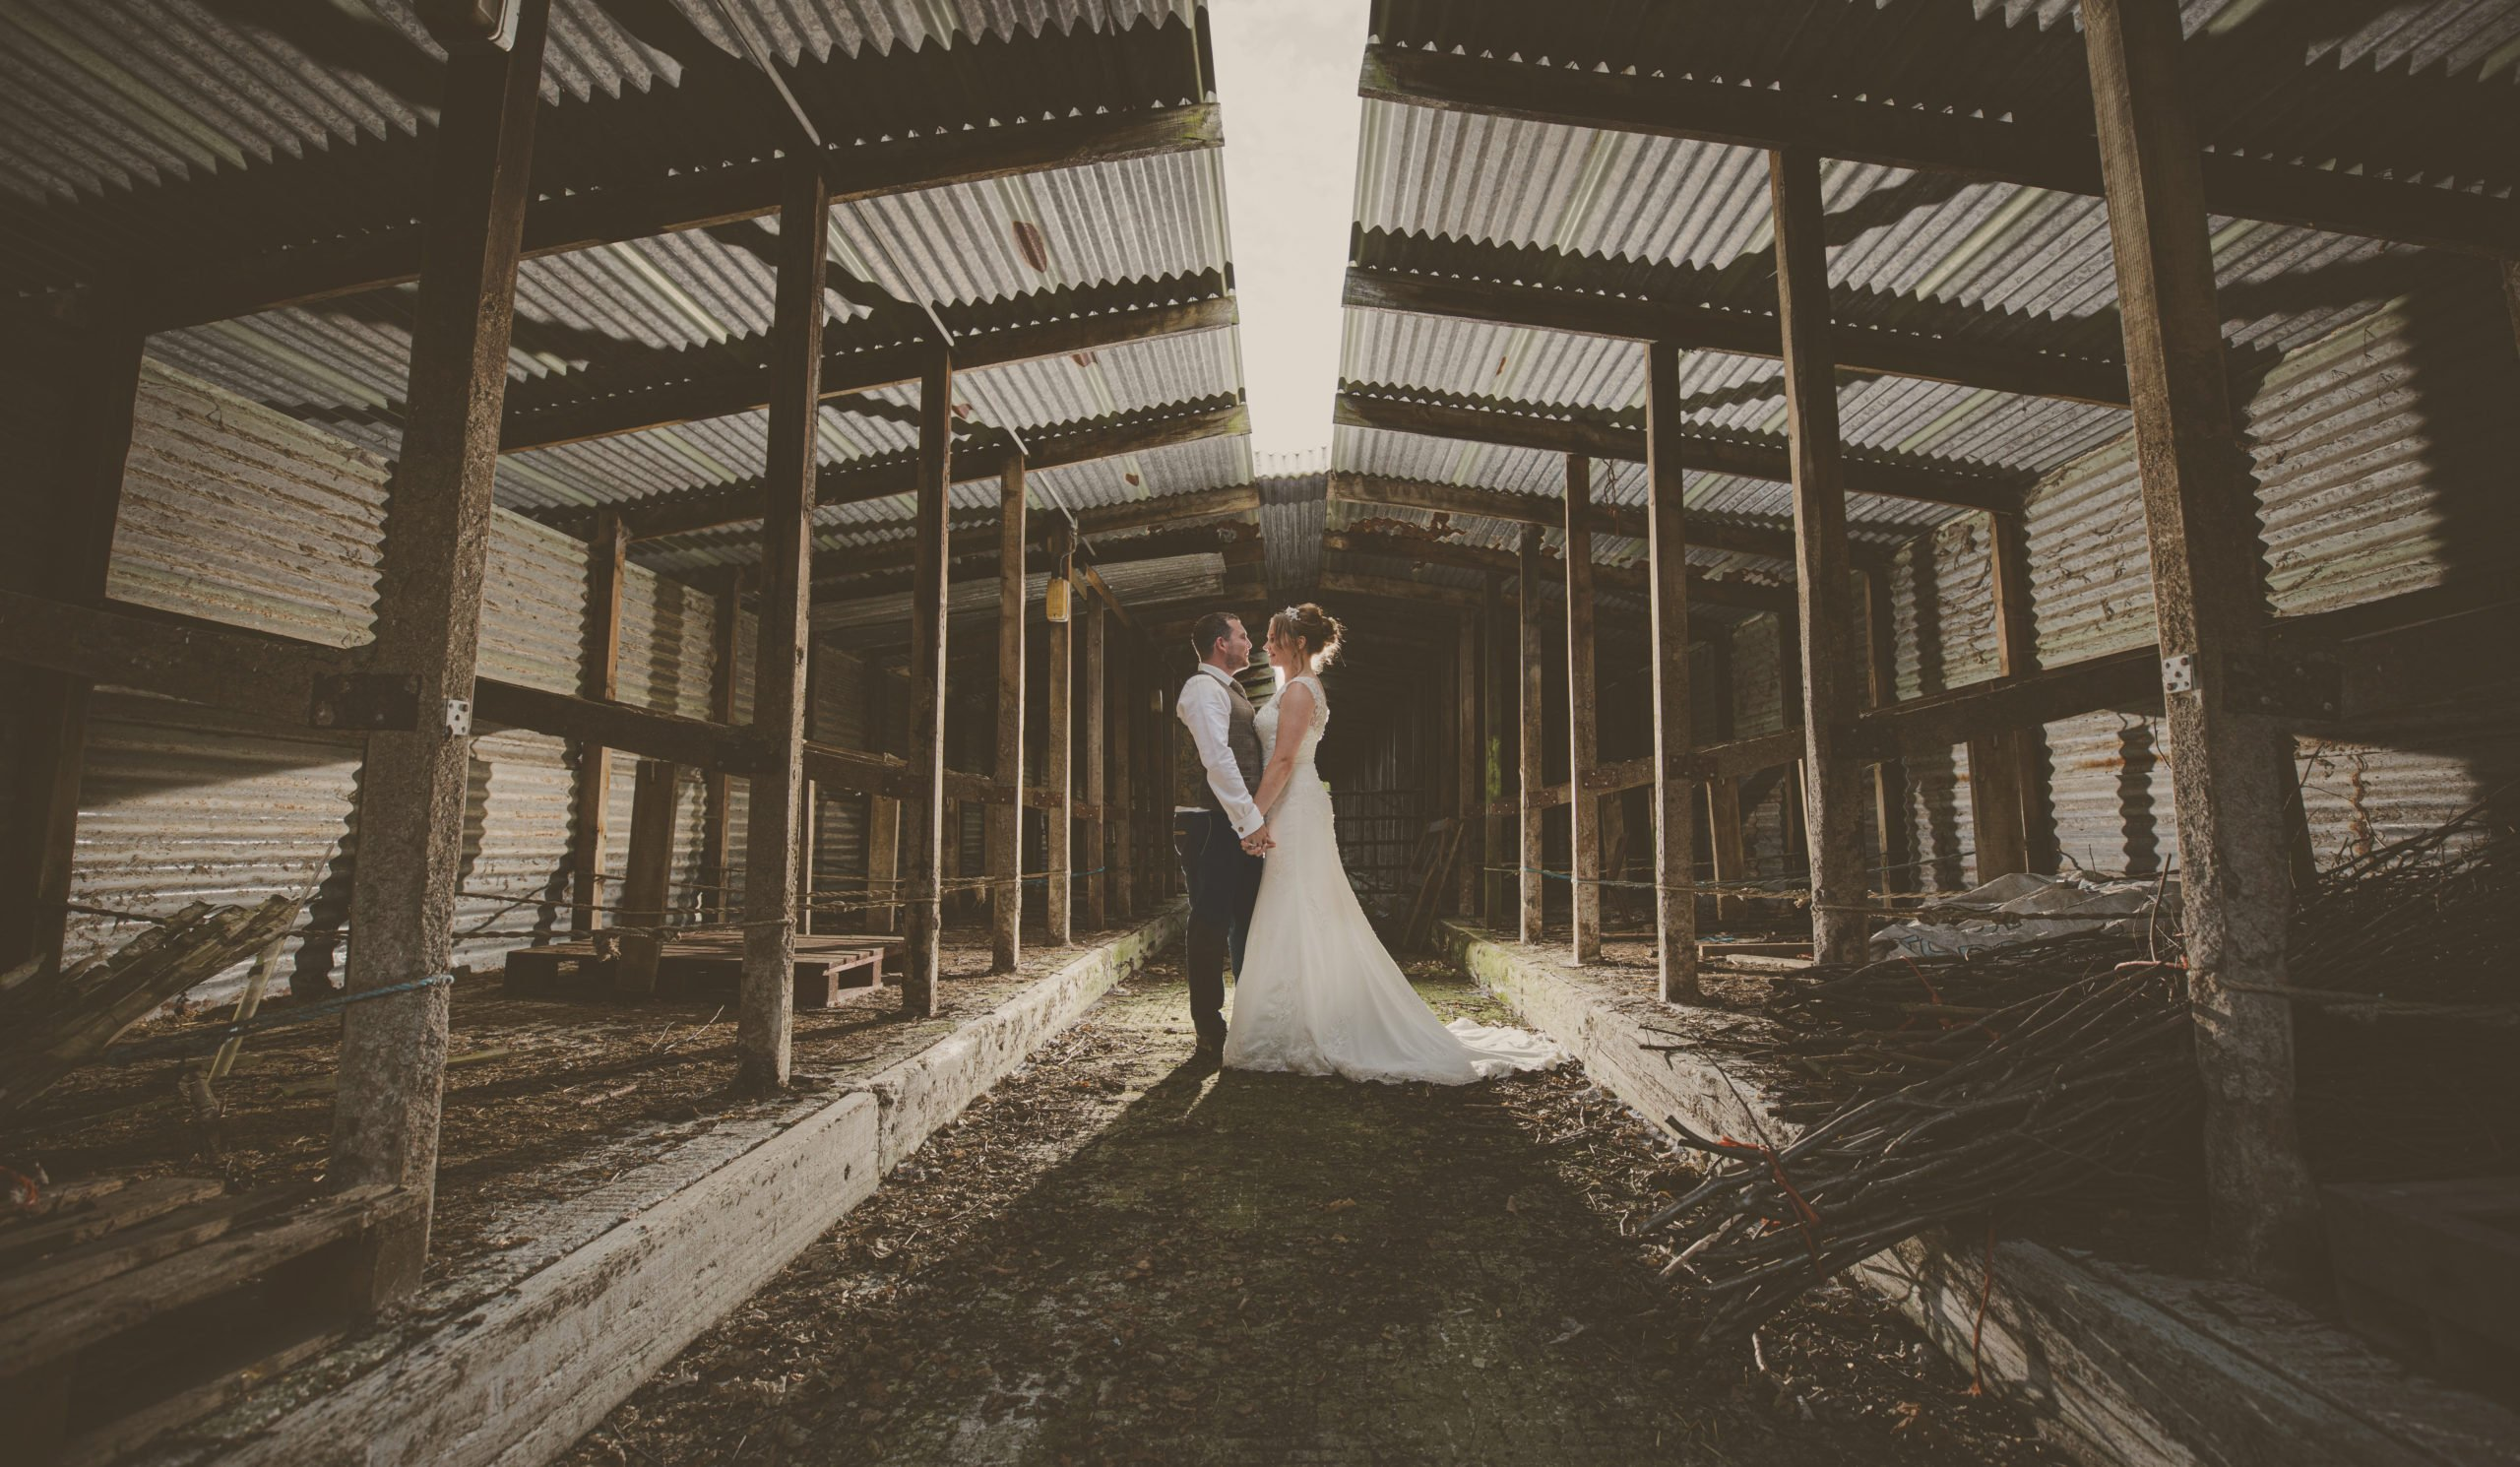 couple standing together in derelict barn